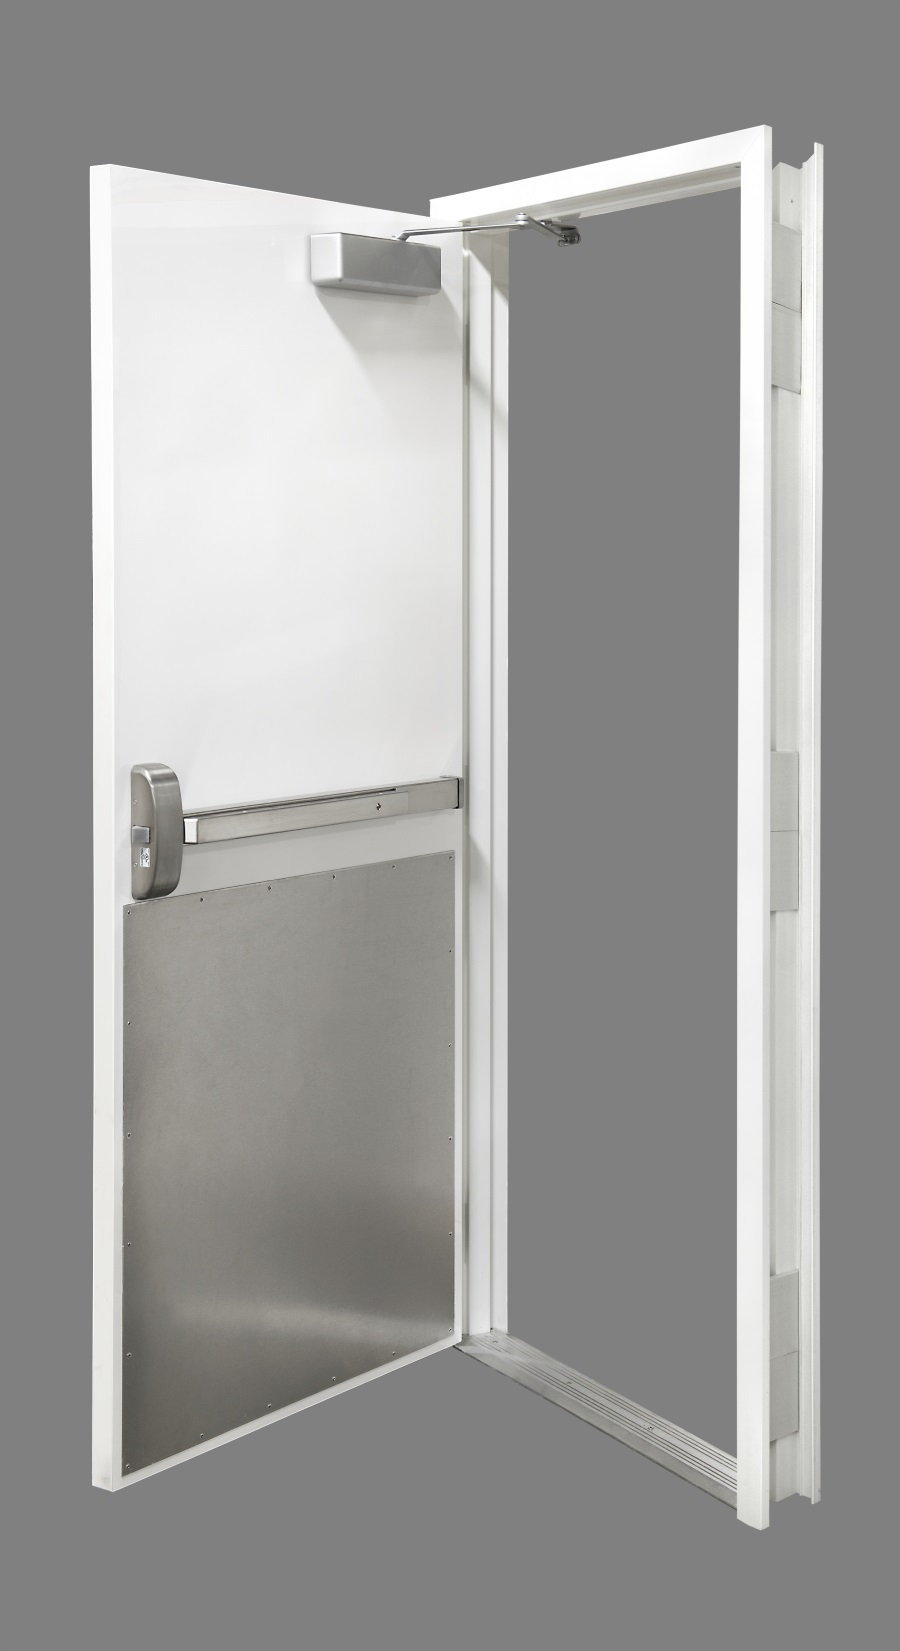 Jamison Door Hagerstown Md. released JAMOTUF a series of fiberglass architectural-style doors and frames for \u201ctuf\u201d environments such as food processing ... & Fiberglass architectural-style doors for tough environments | 2018 ...